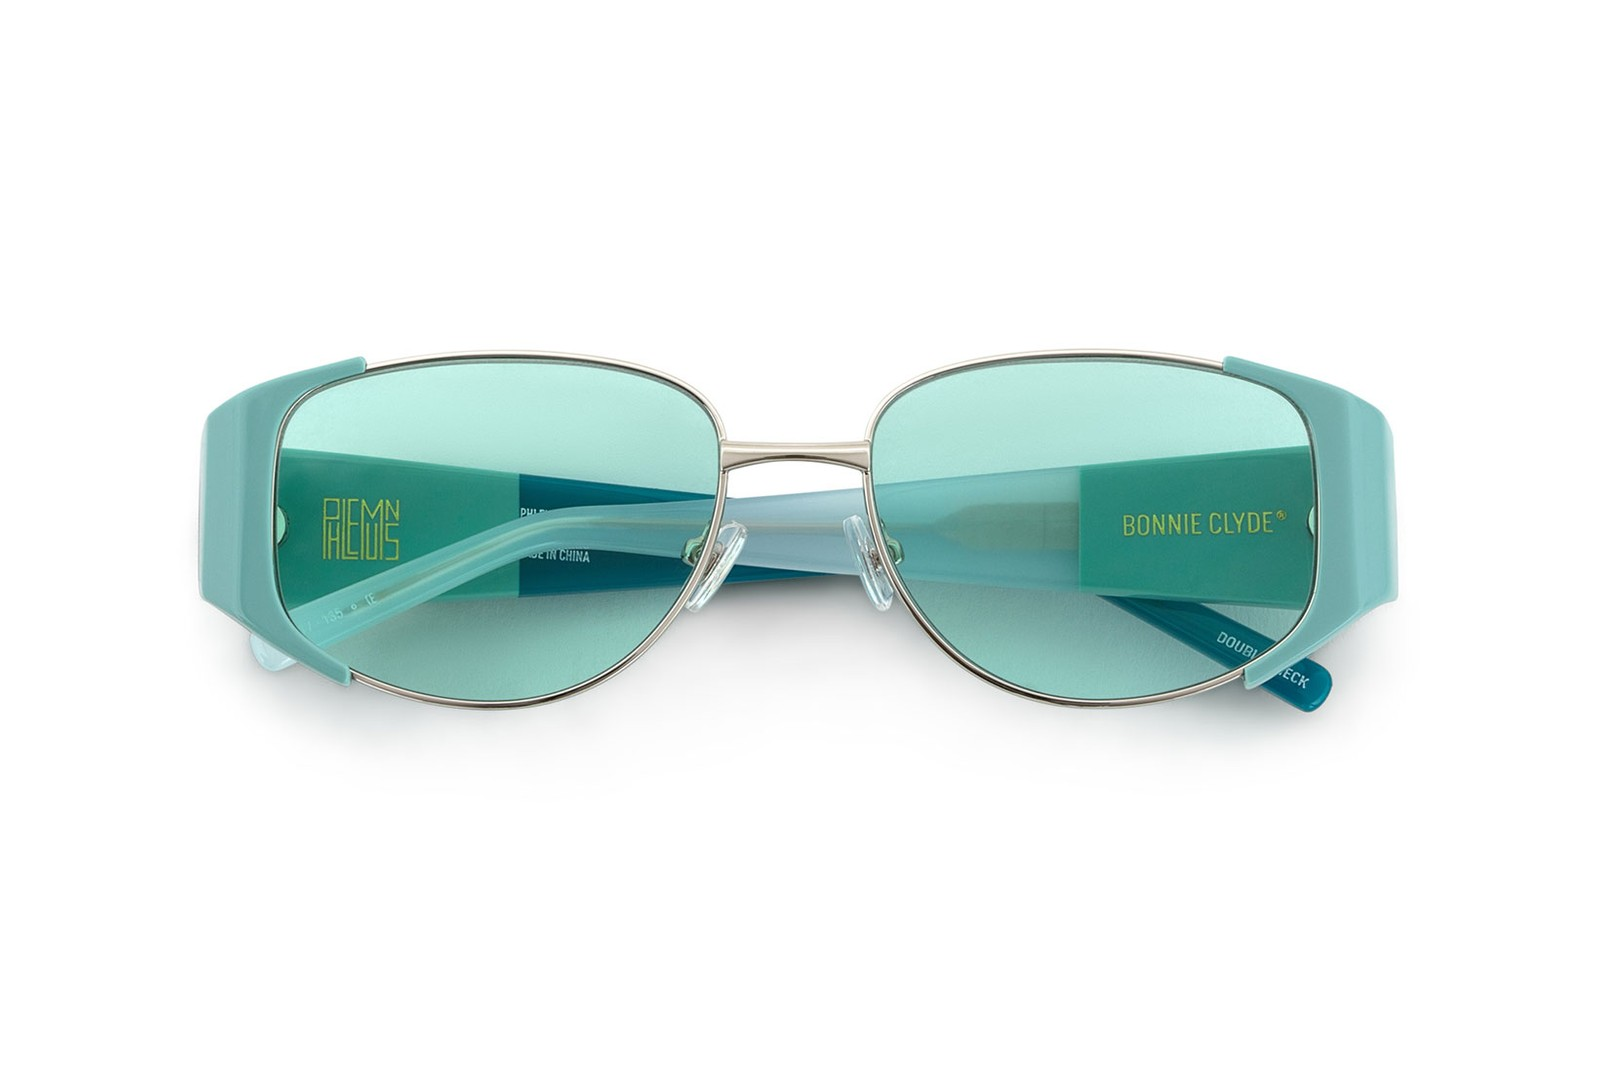 PHLEMUNS x Bonnie Clyde Sunglasses Double Check Teal Pheal